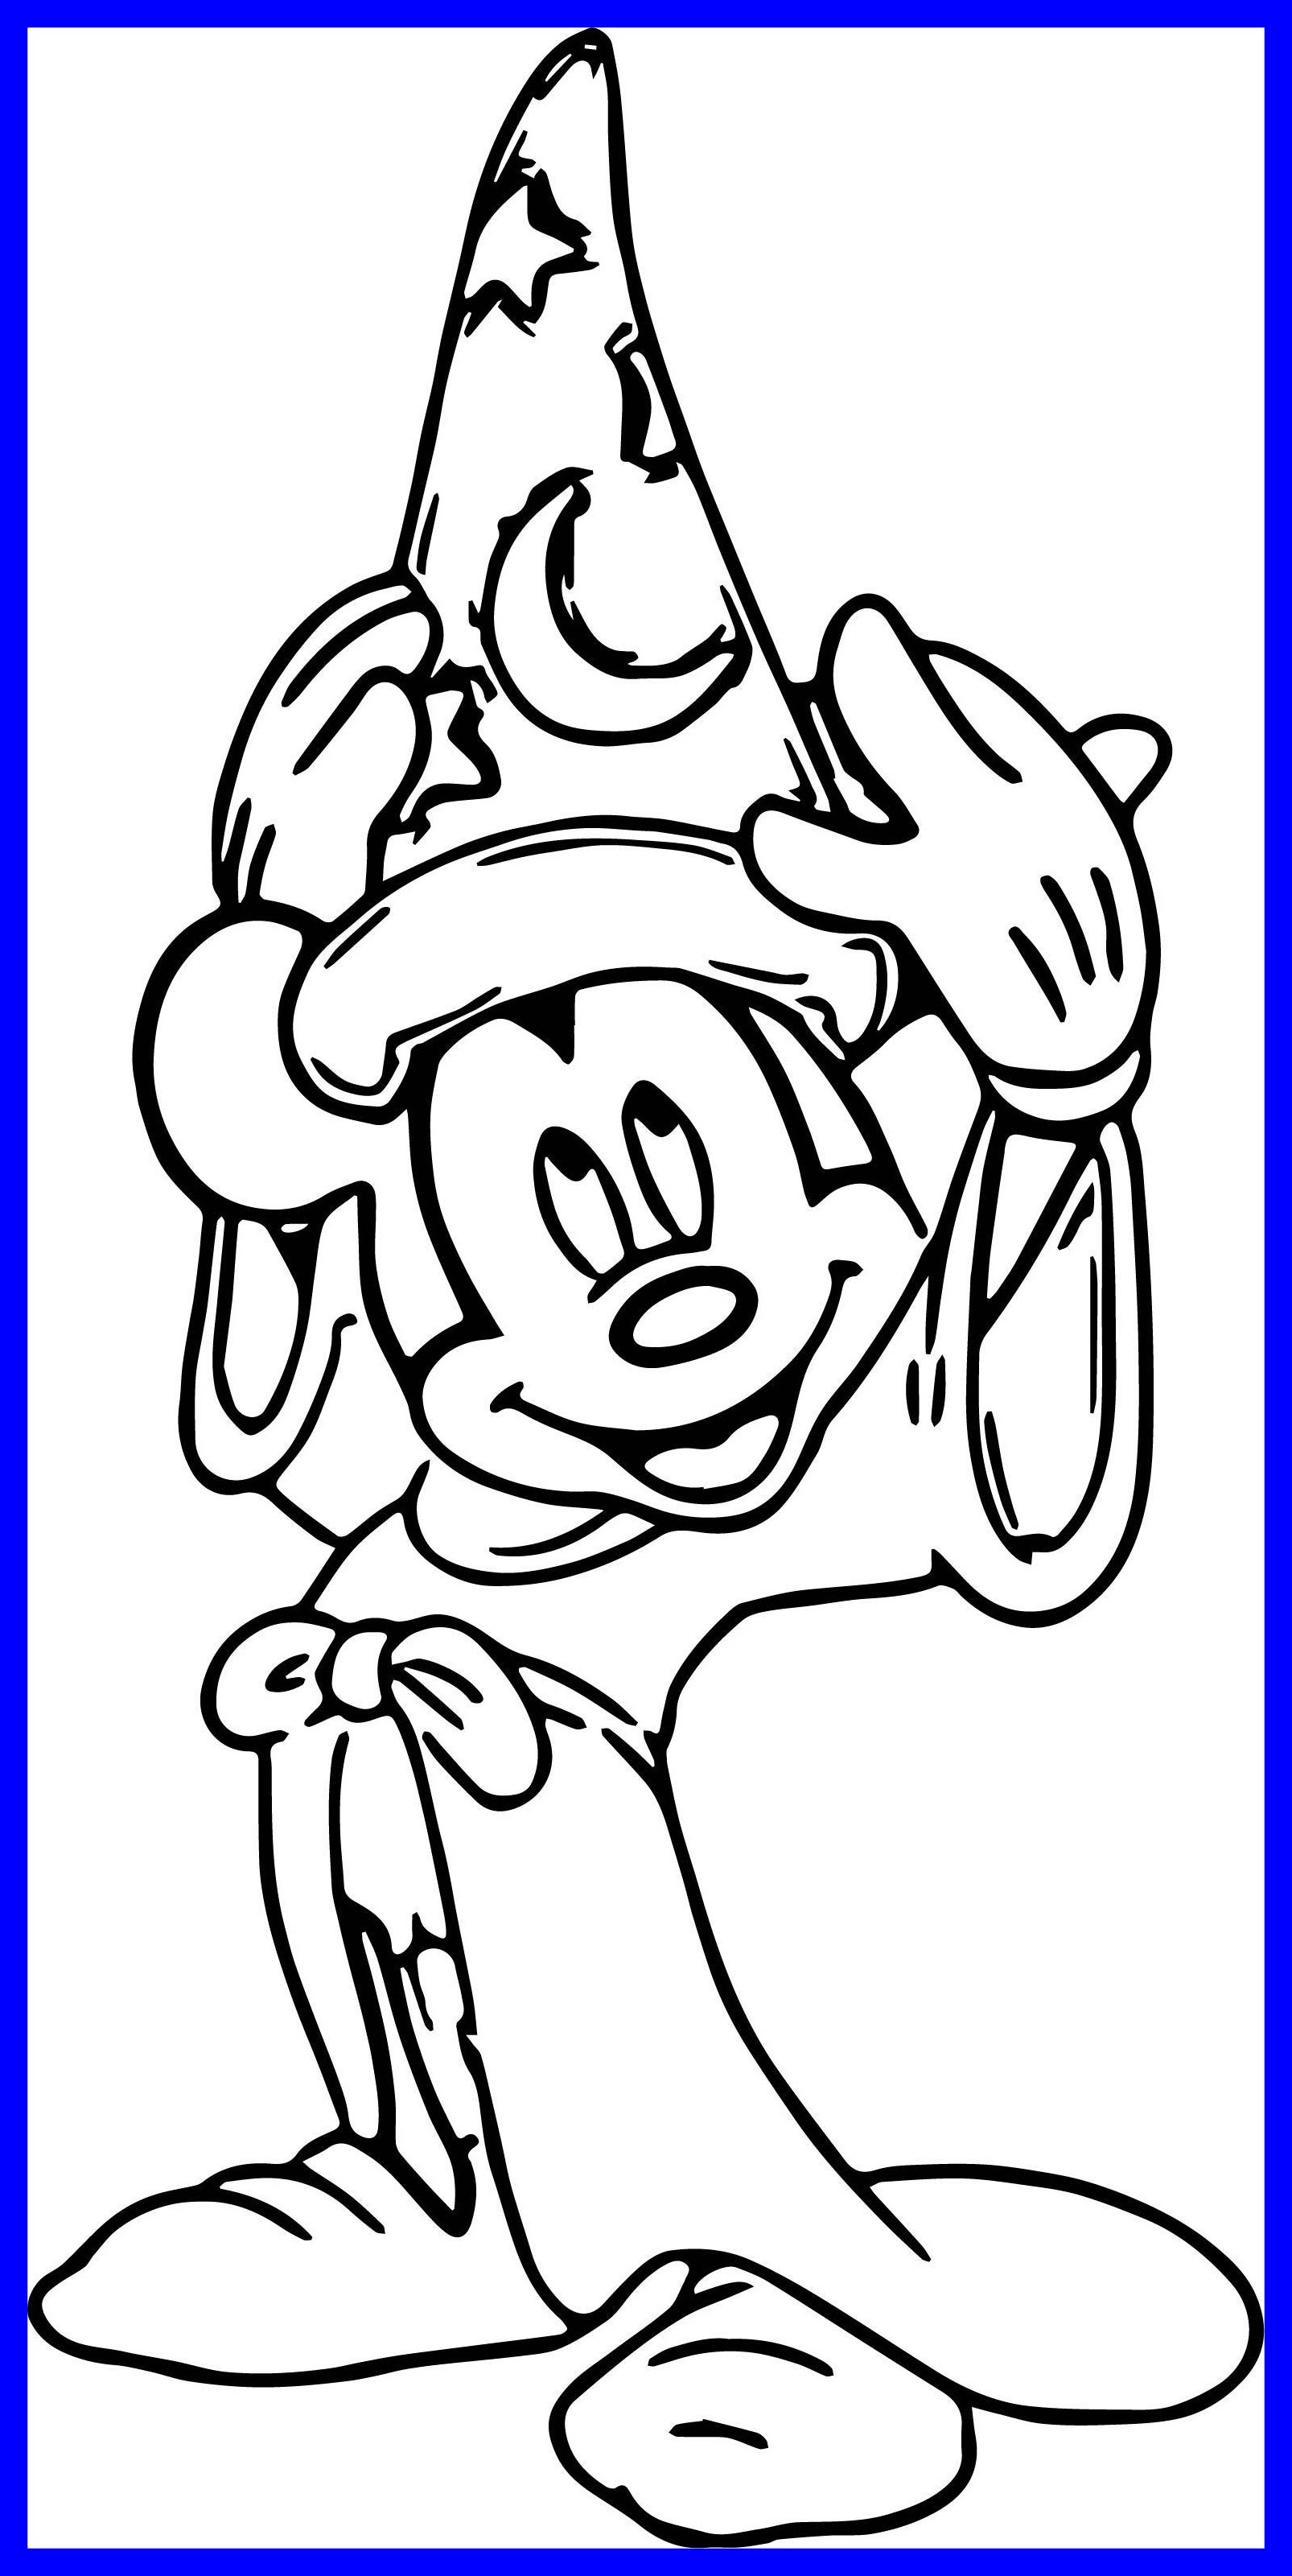 1606x3201 Fascinating Magic Mickey Mouse Hat Coloring Pages Wecoloringpage